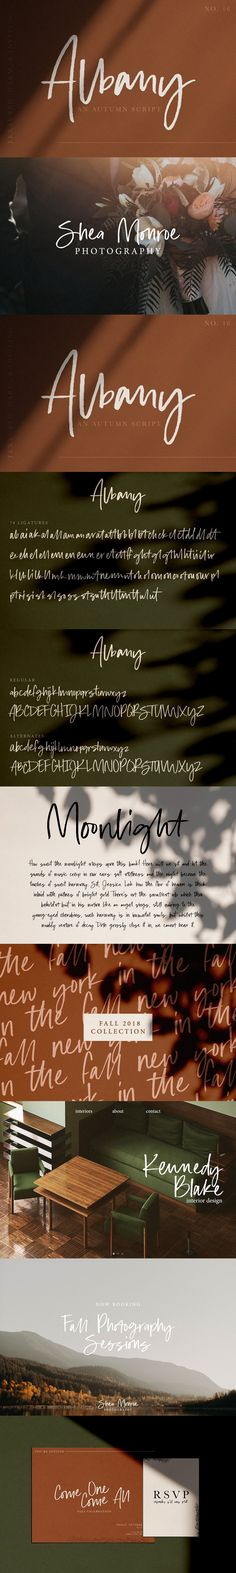 Albany | An Autumn Script Halloween Fonts, English Characters, Script Fonts, Cool Fonts, Printed Materials, Lower Case Letters, Lowercase A, Logo Branding, Signage